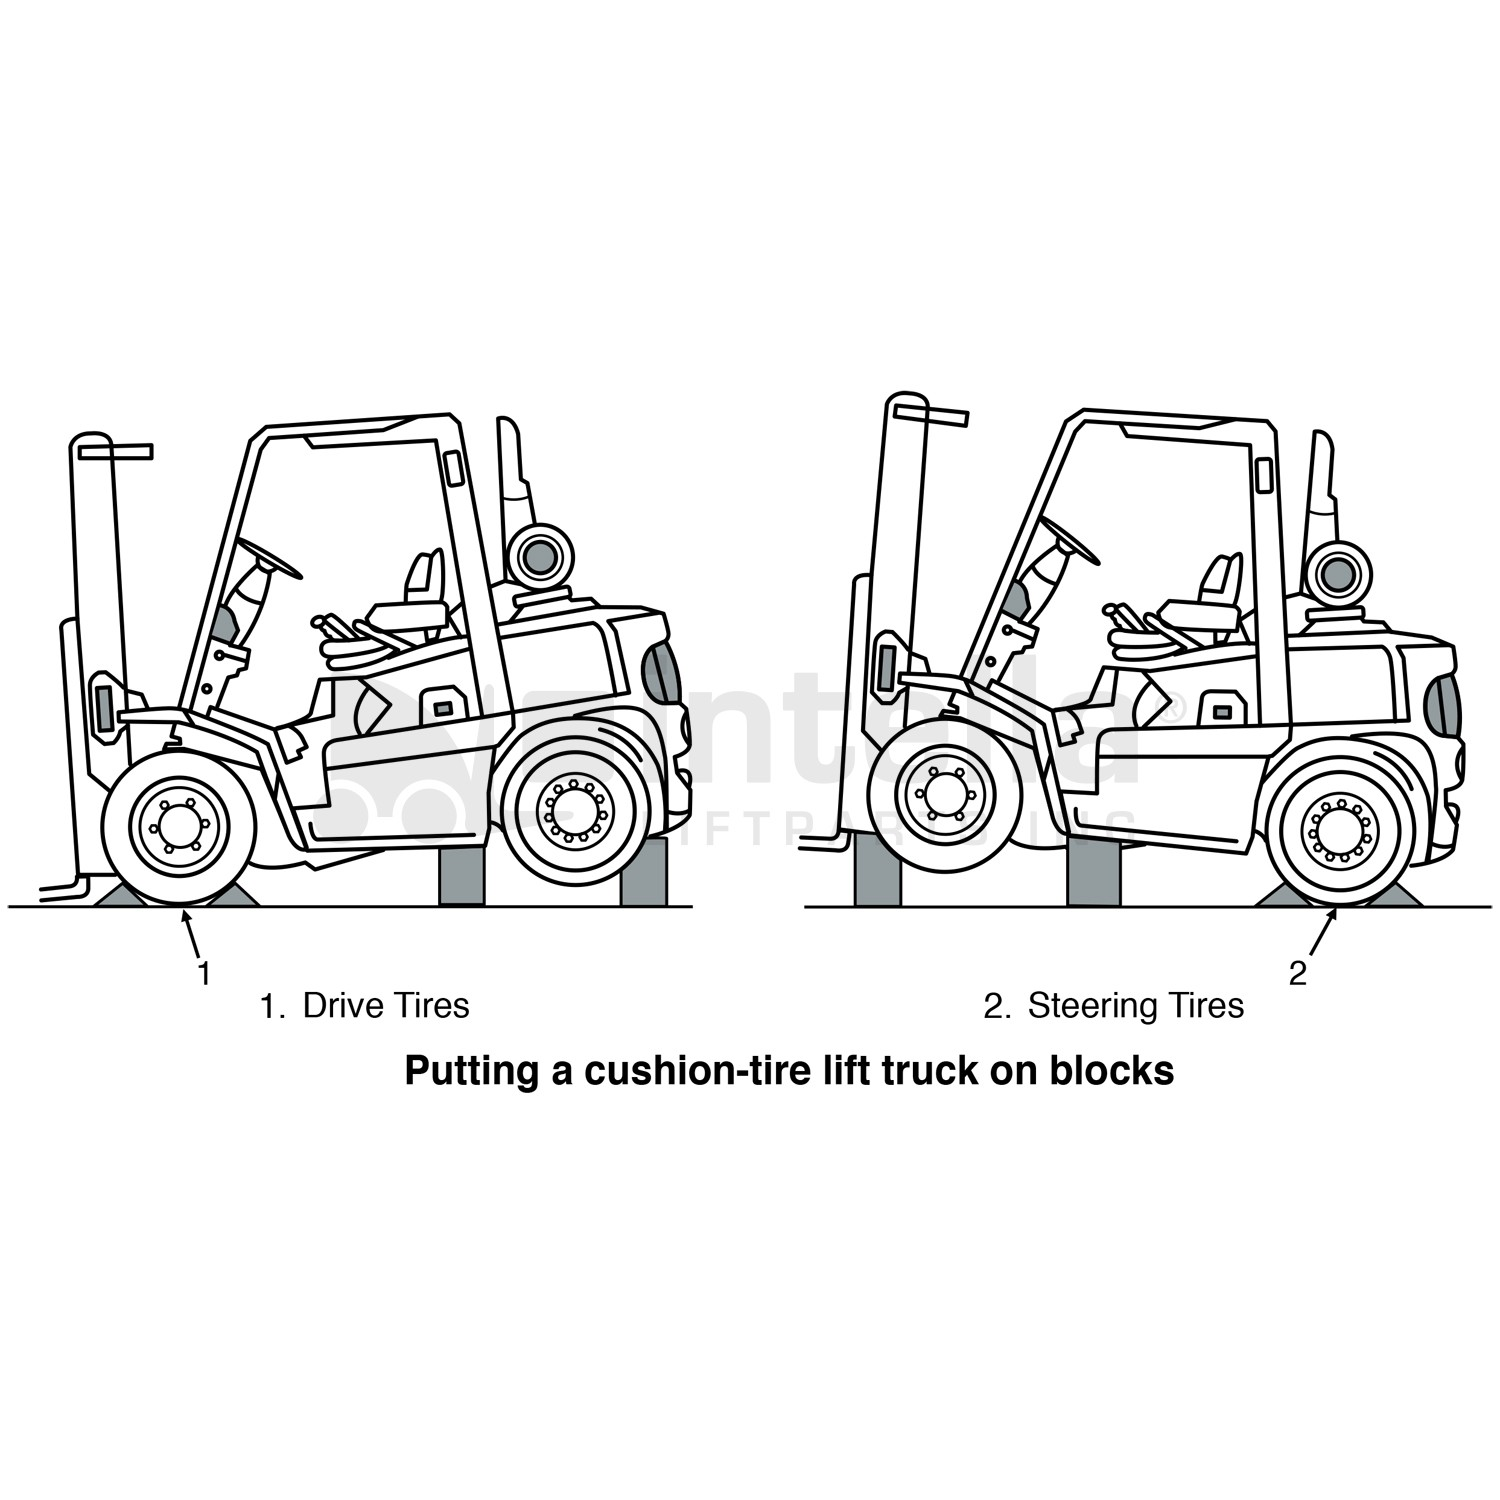 Clark C50b forklift Parts Diagram Intella Liftparts How to Block Up A forklift Using Wheel Of Clark C50b forklift Parts Diagram